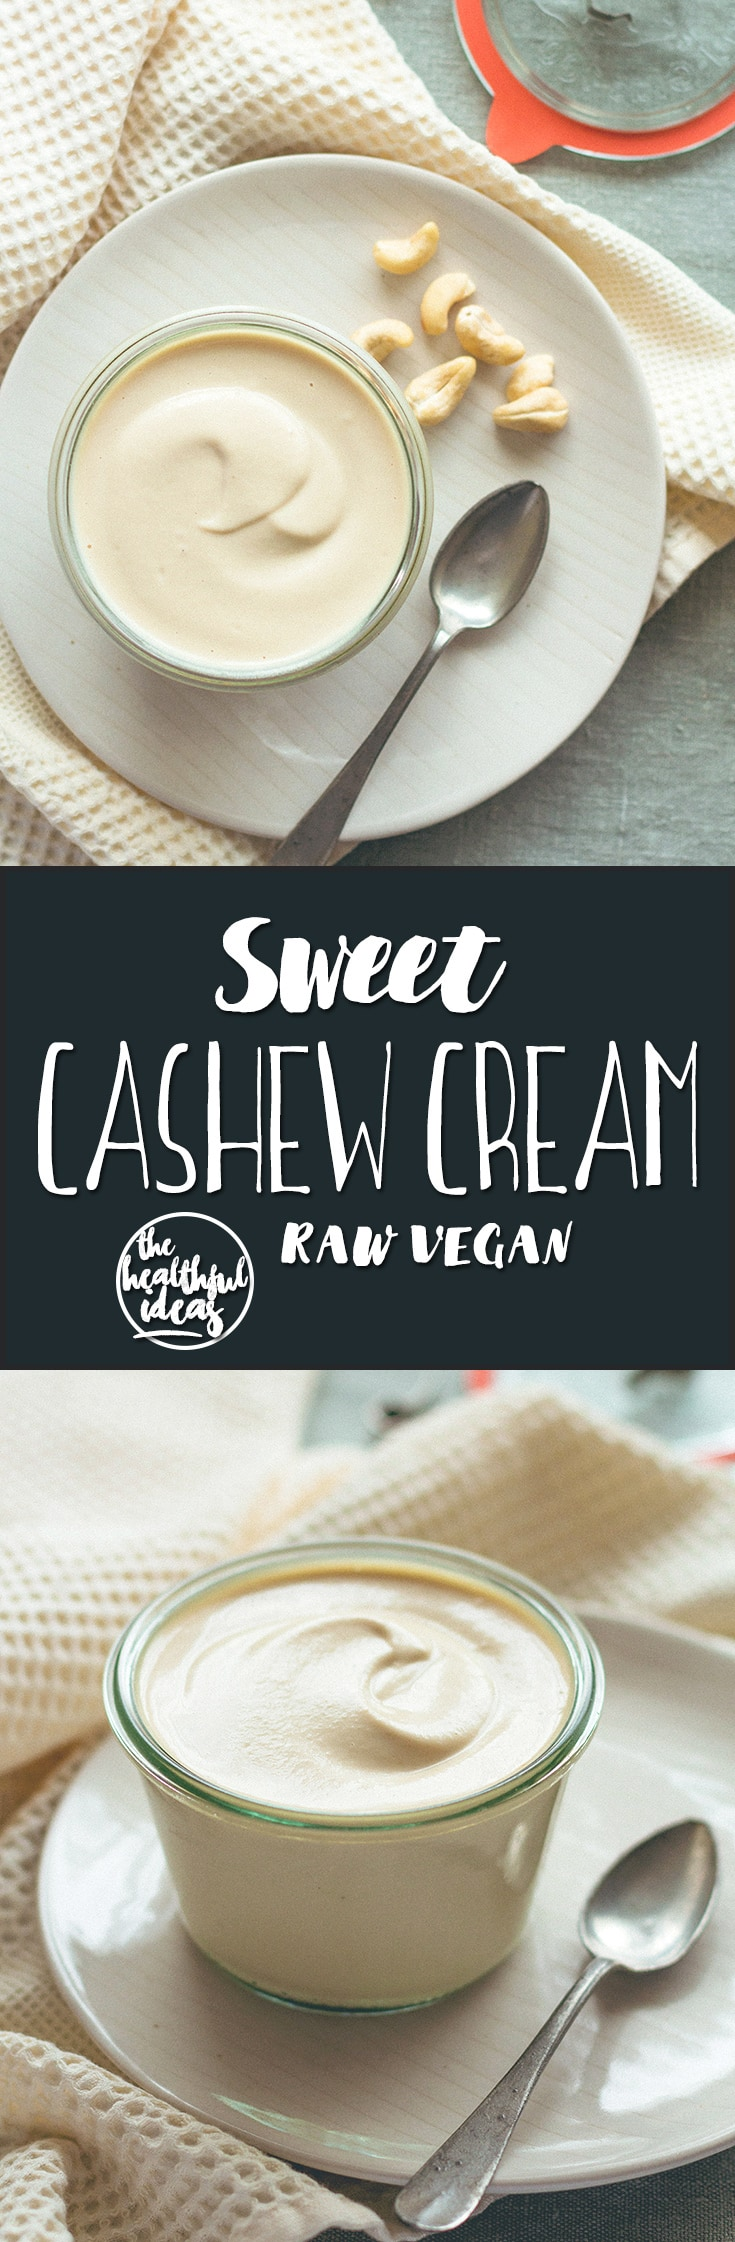 Sweet Cashew Cream - raw vegan and delicious! You'll love this recipe, it's super versatile! It's incredible how similar it is to dairy cream. | thehealthfulideas.com